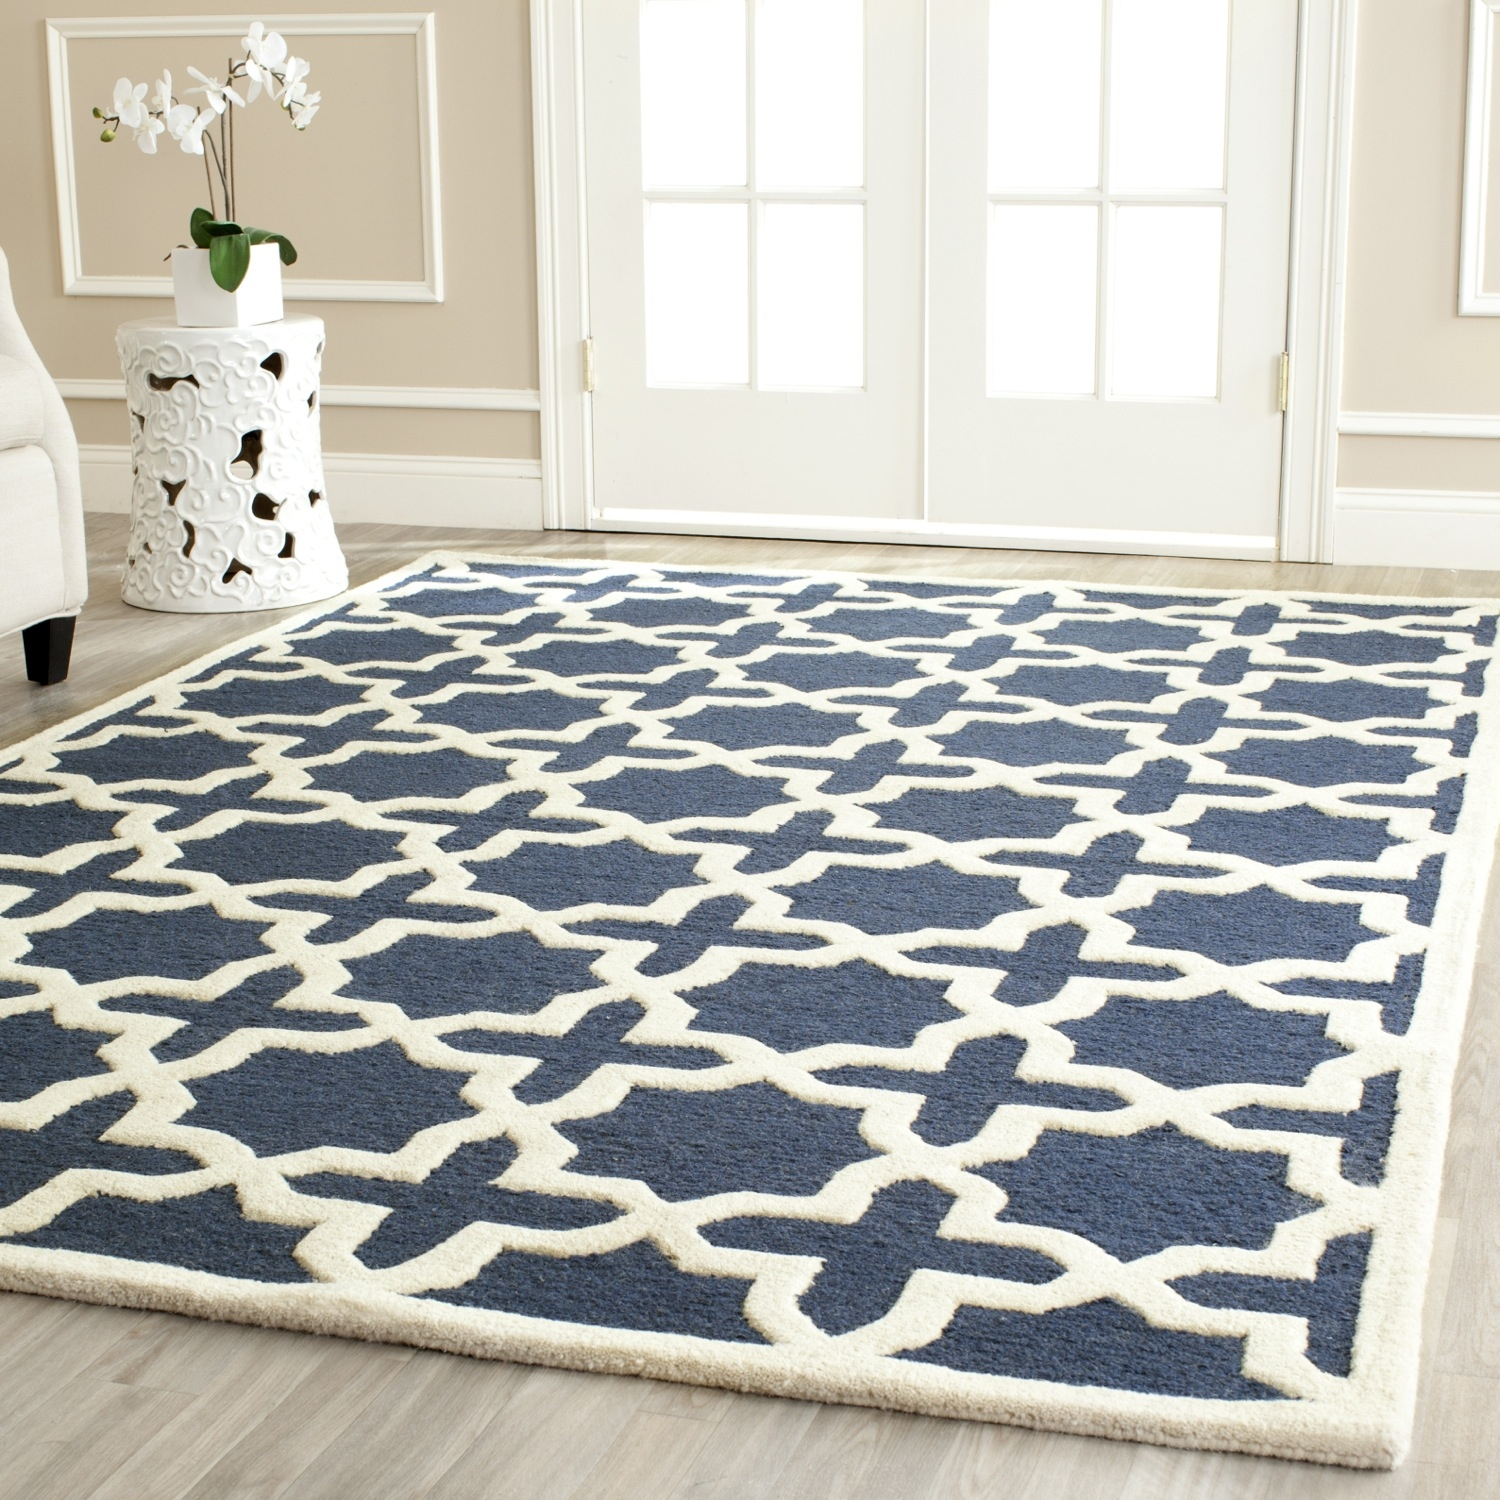 Safavieh Cambridge Navy Blue Ivory Wool Contemporary Area Rug Regarding